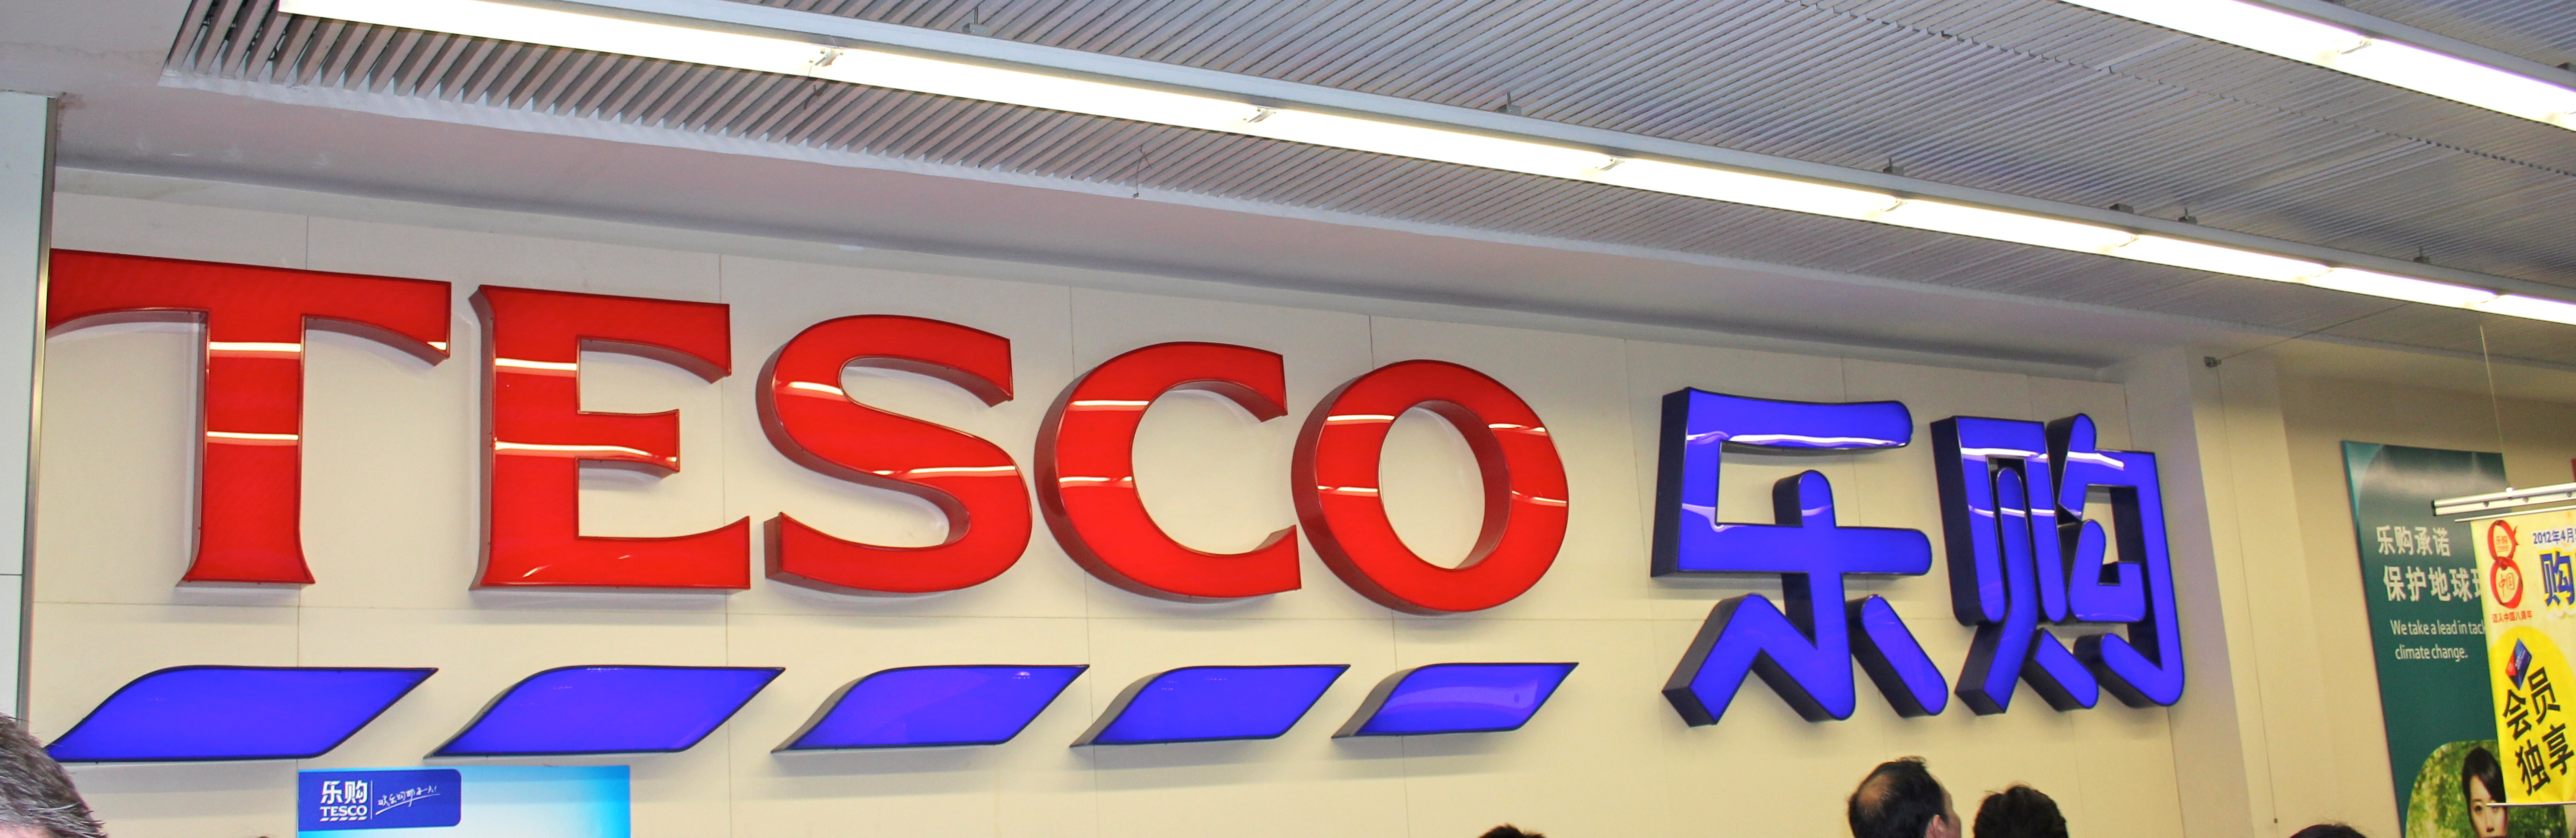 tescos entry into china Foreign supermarkets find competition tough  the online market is so huge that foreign retailers should look into  this article appeared in the south china.